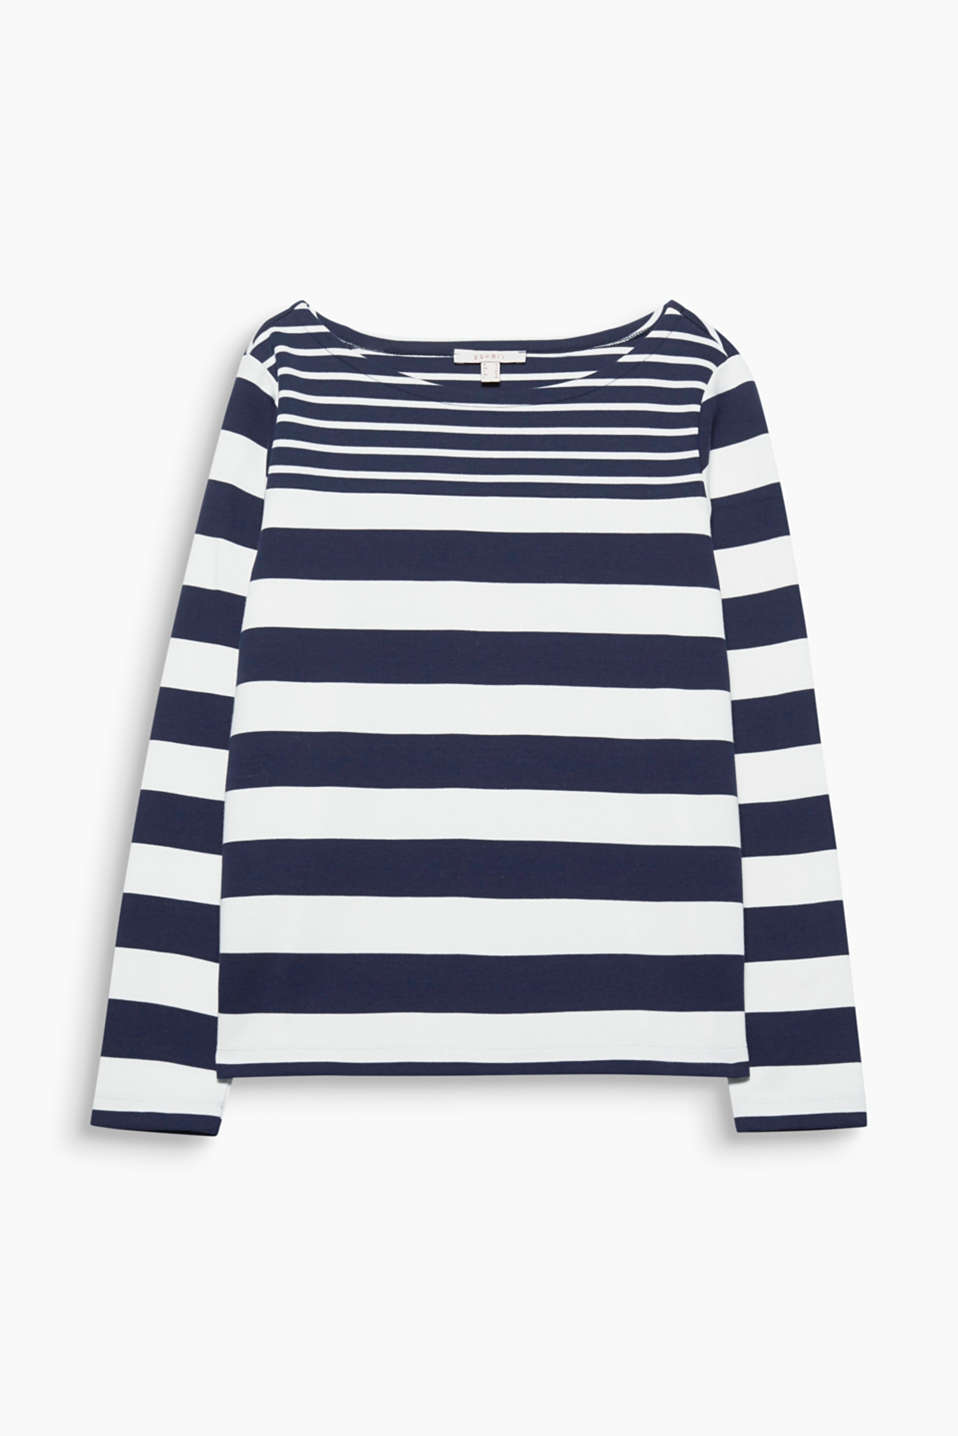 This straight cut, lightweight cotton sweatshirt is given a fresh look by its sporty striped mix!